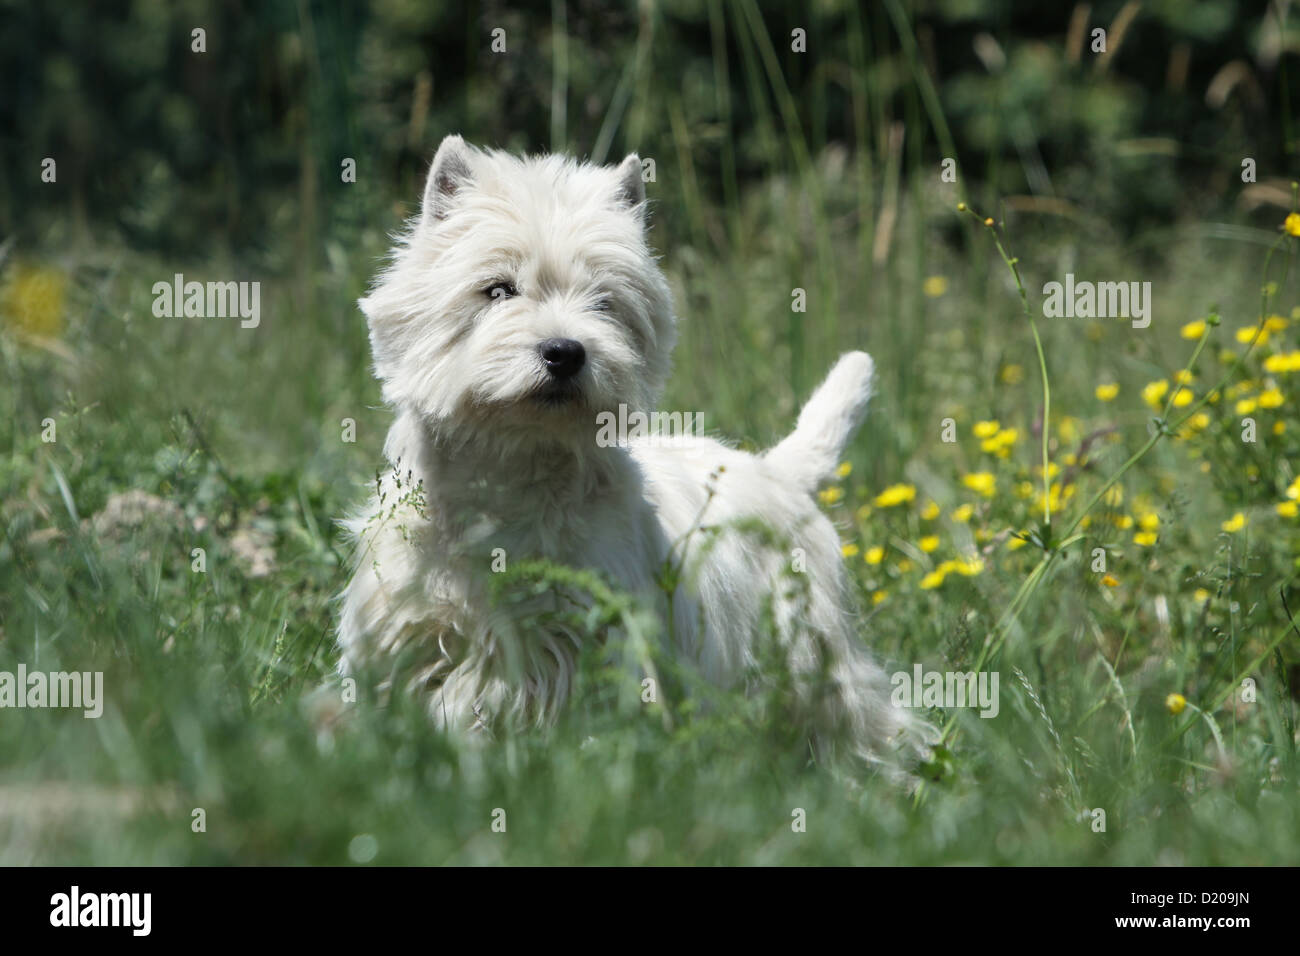 A Westie Stock Photos & A Westie Stock Images - Page 3 - Alamy